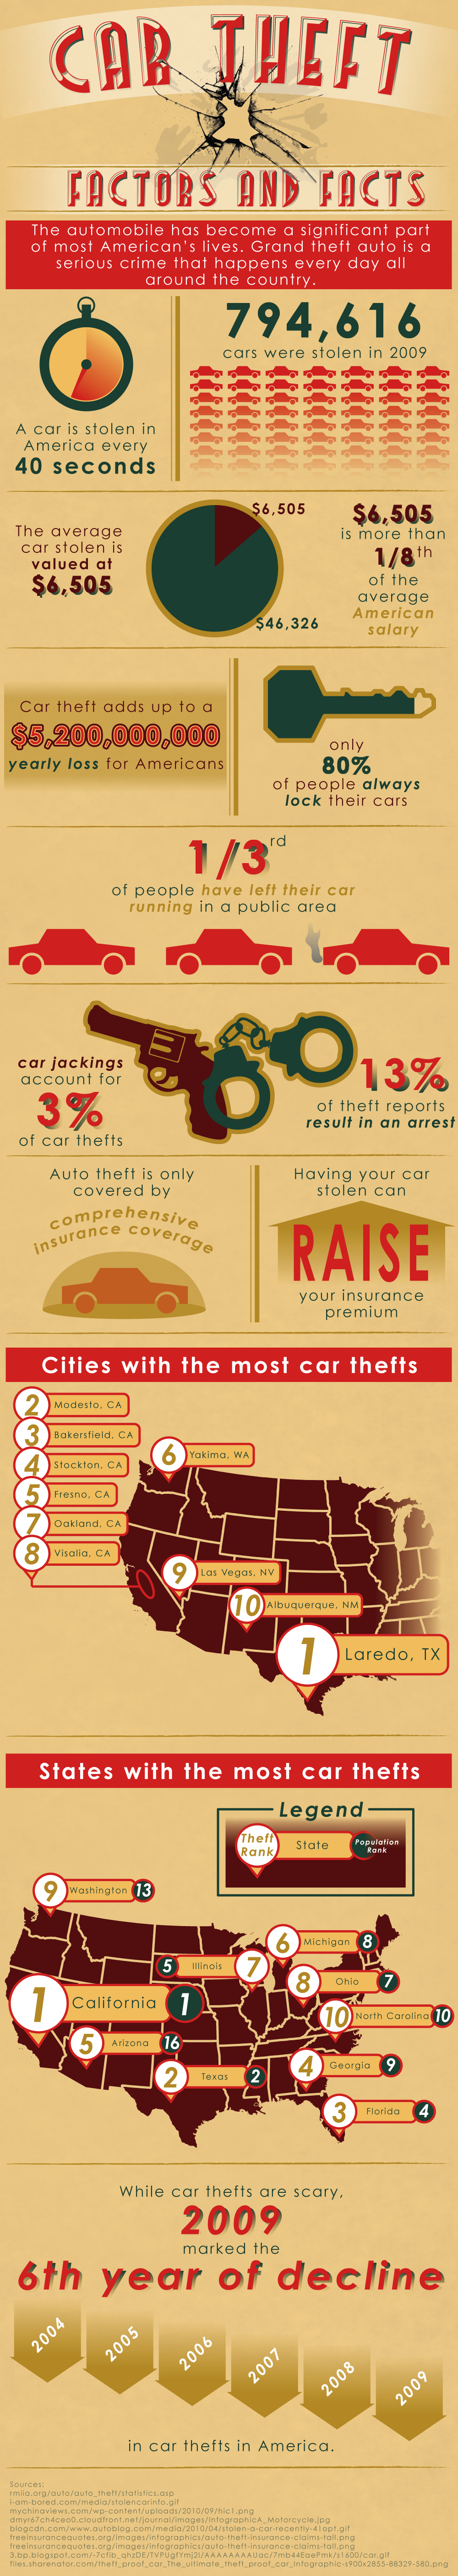 Growing wave of car thefts in America | Big car, Discount ...